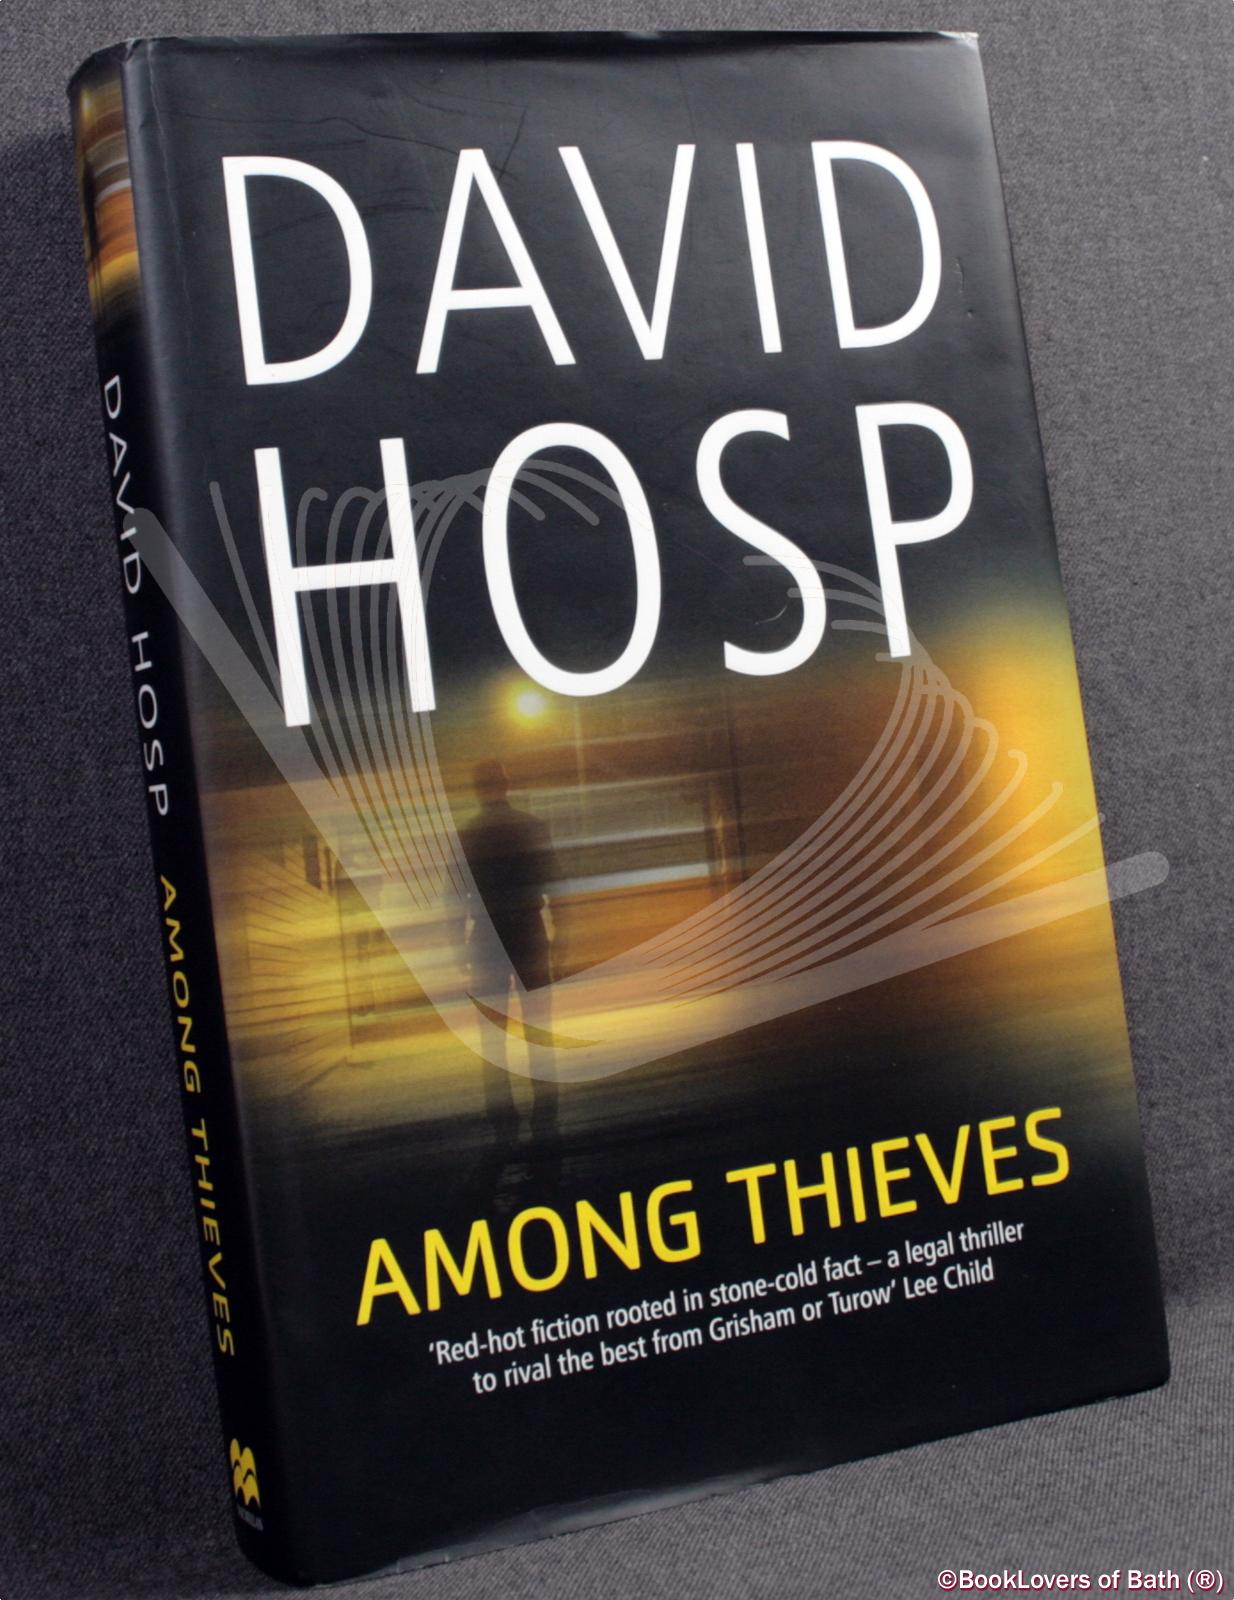 Among Thieves - David Hosp